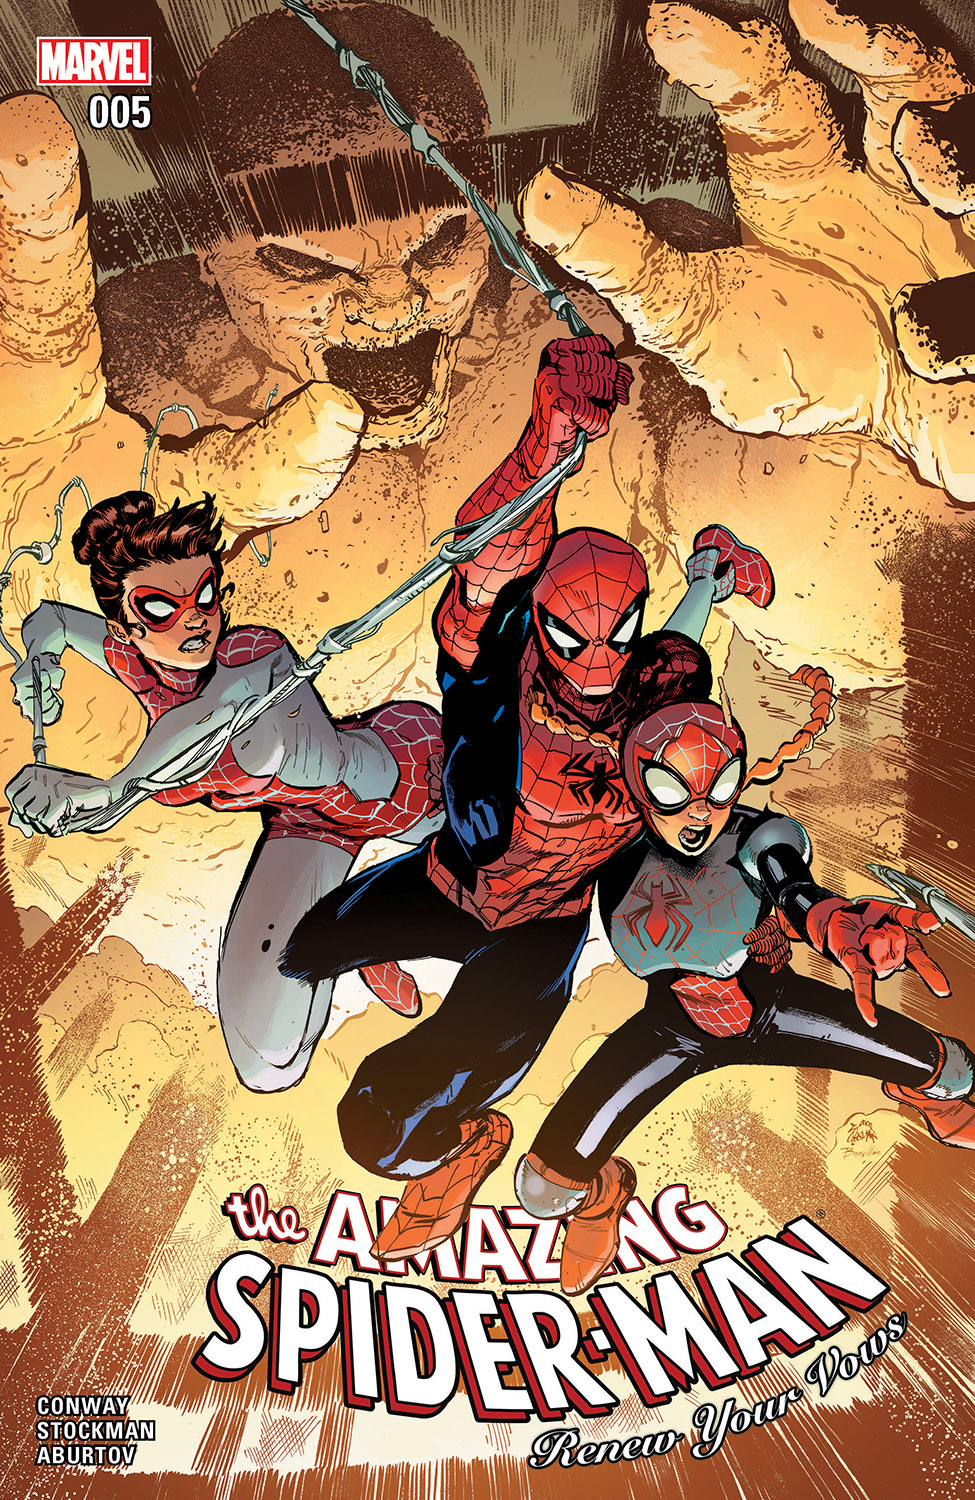 Amazing Spider-Man: Renew Your Vows (2016) #5